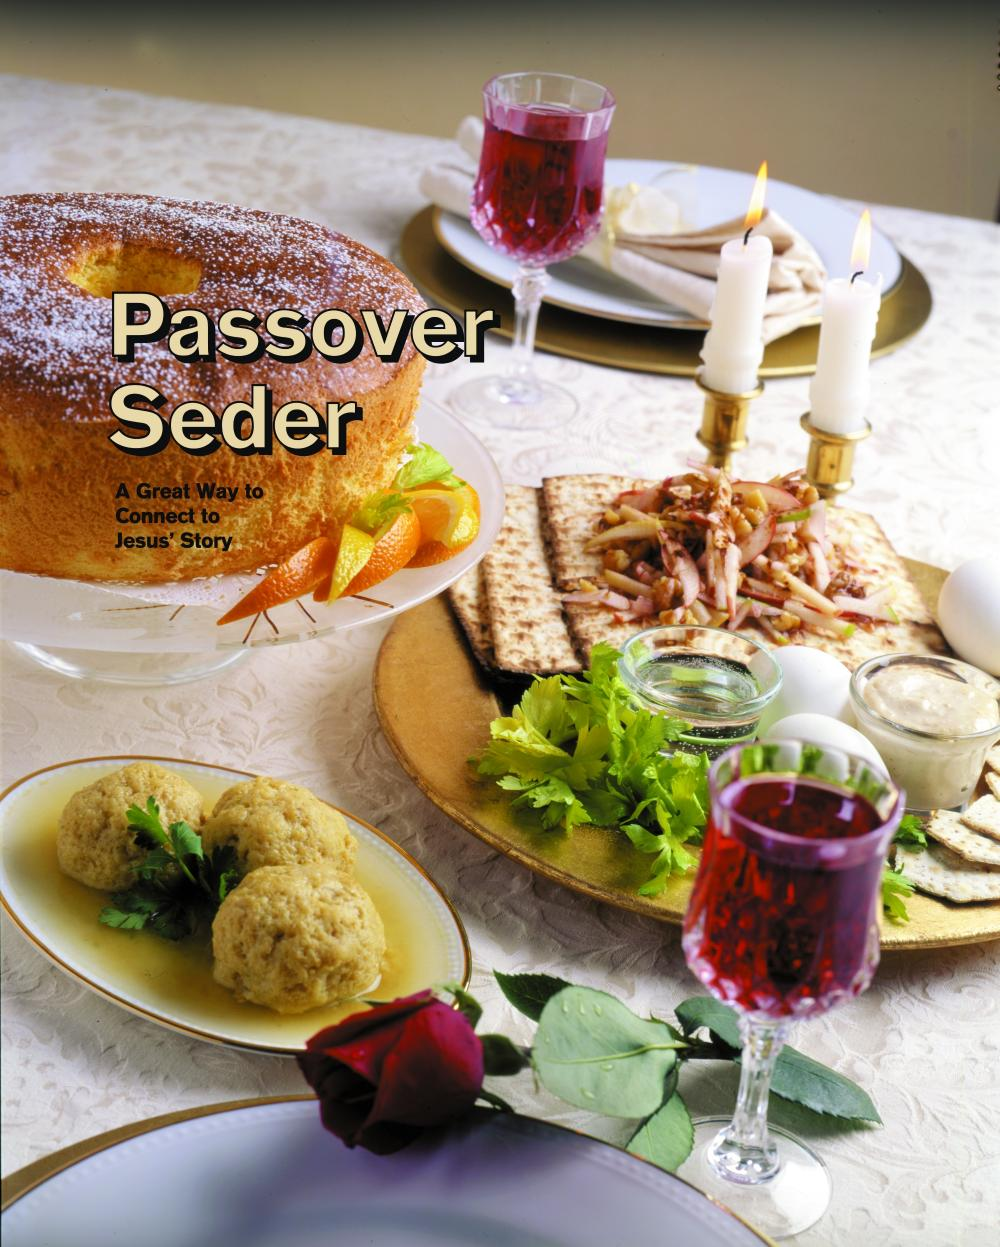 Passover seder – a great way to connect o Jesus' story